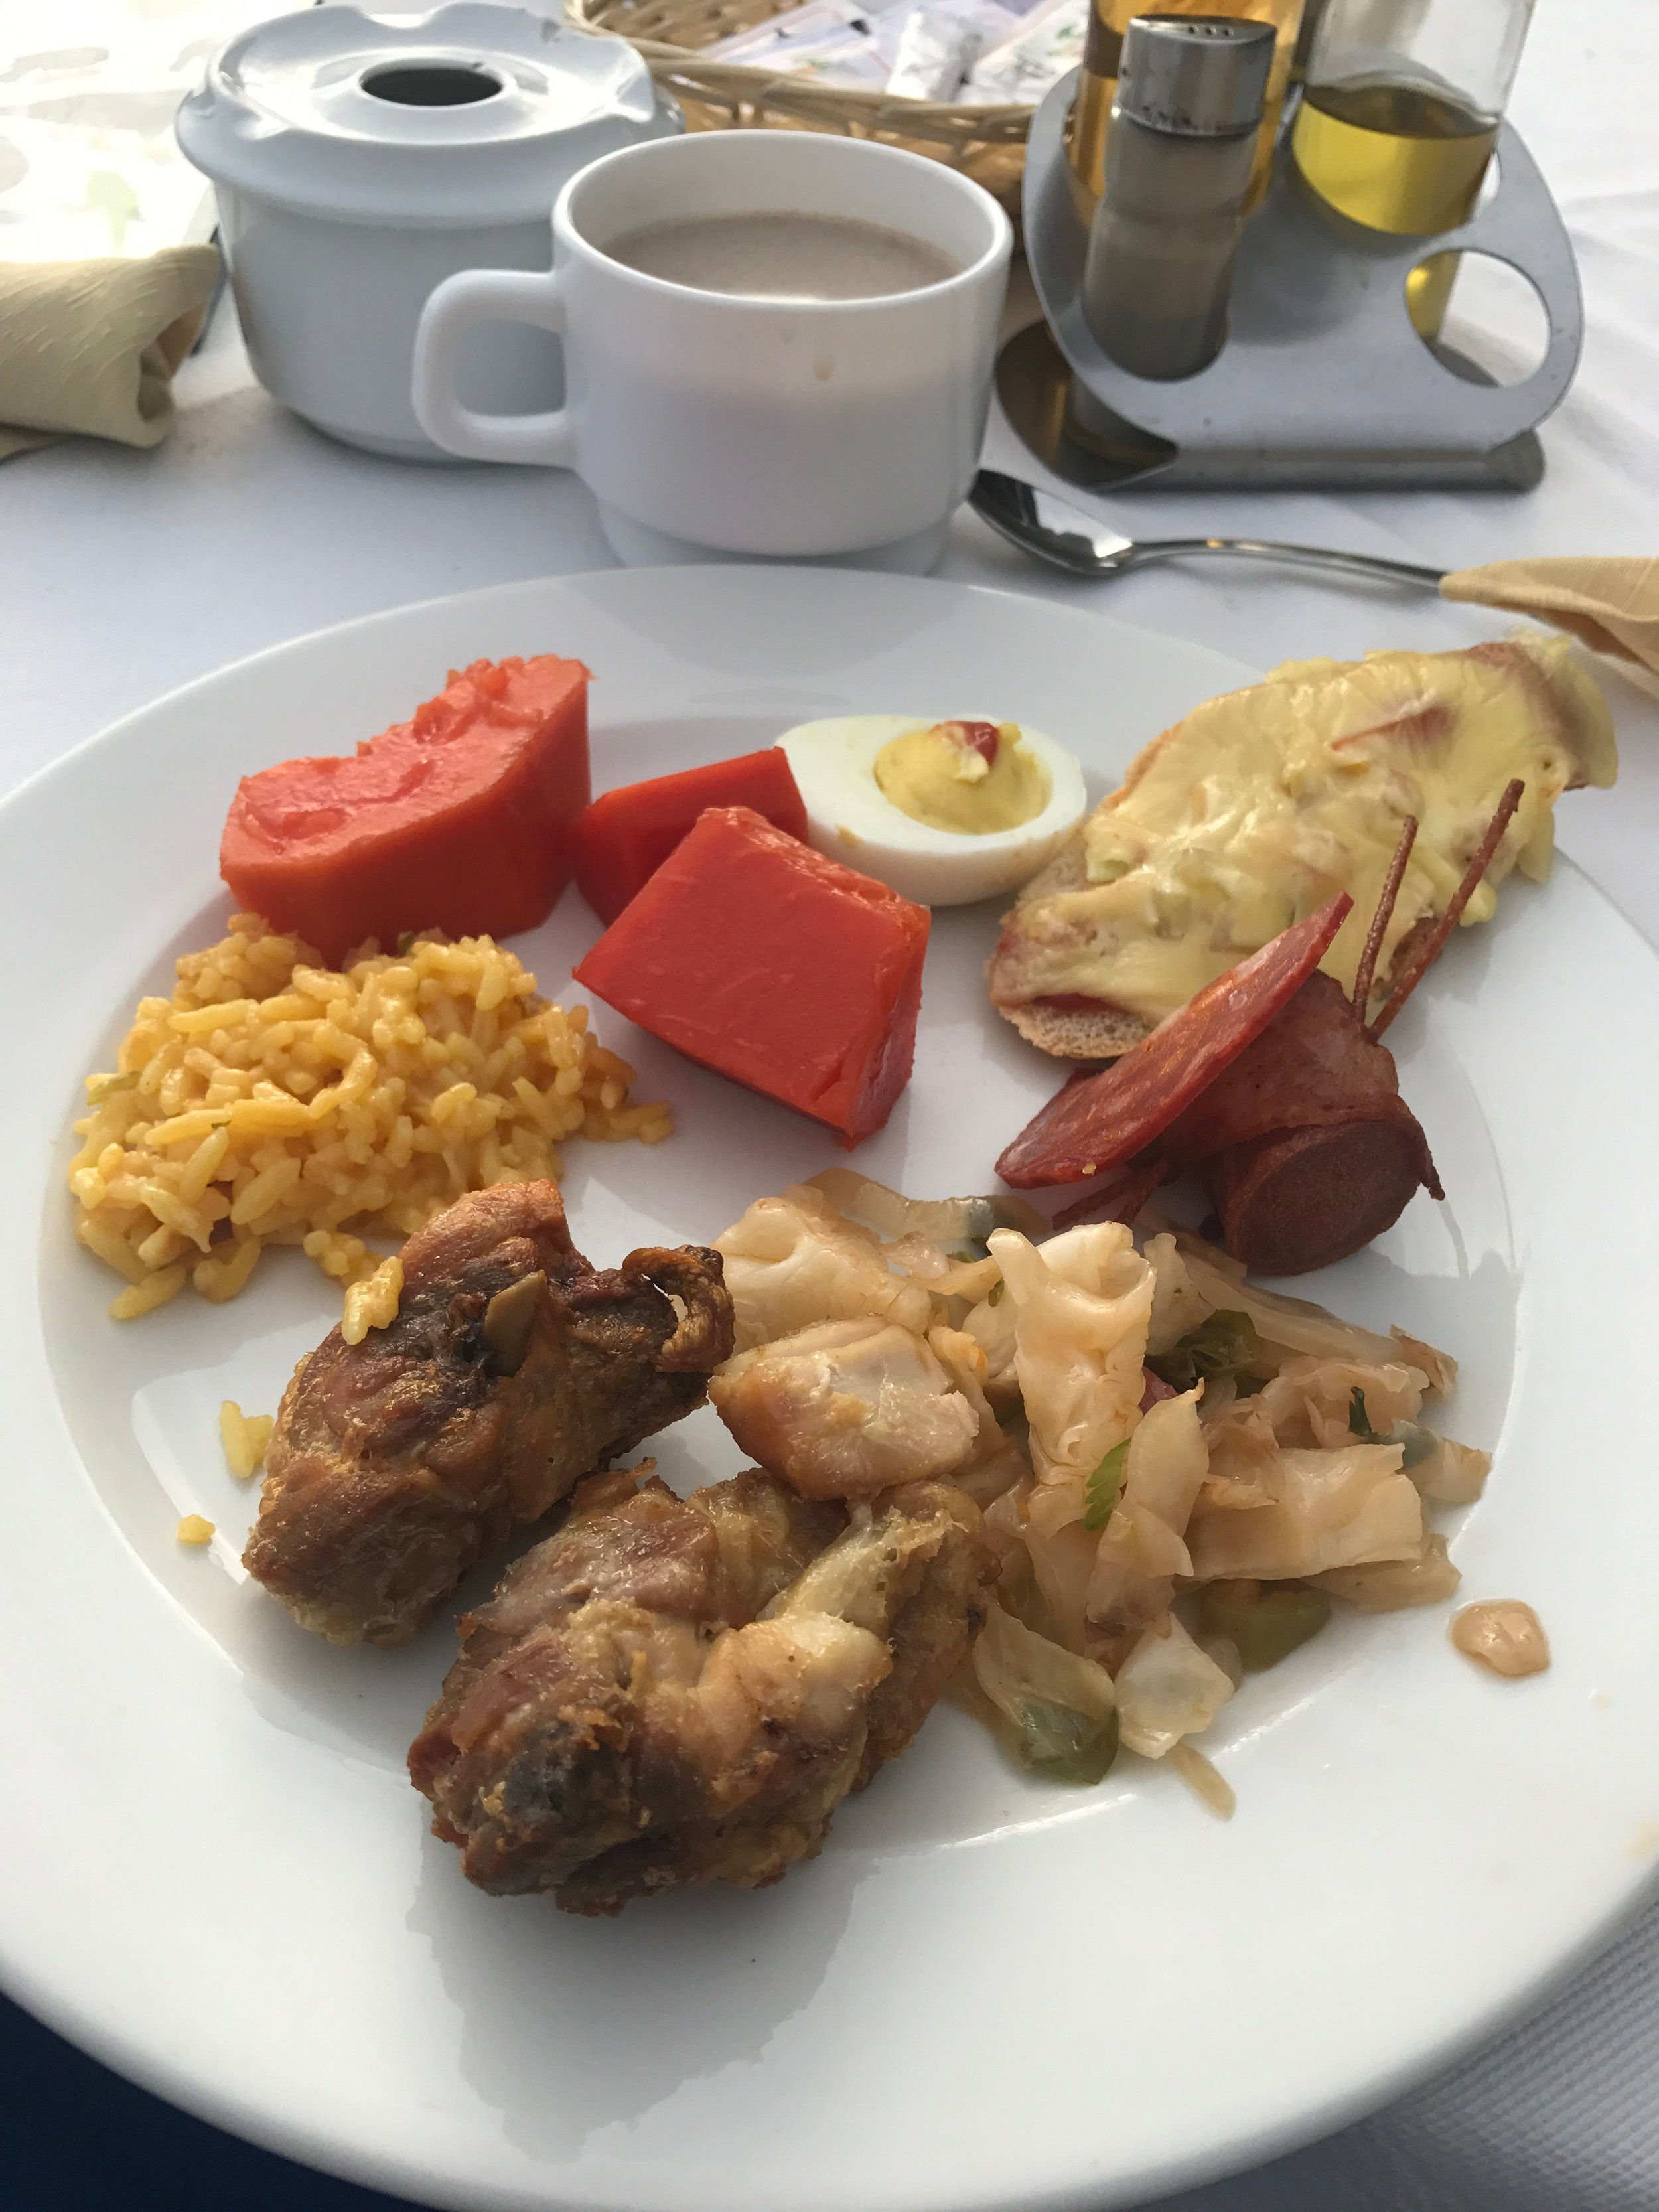 Sampling of the breakfast buffet at my Havana hotel: papaya, cheesy rice, friend chicken, suateed cabbage, hot dog wrapped in pepperoni, deviled egg, baguette with melted cheese. There all kinds of breads and roll to choose from as well.